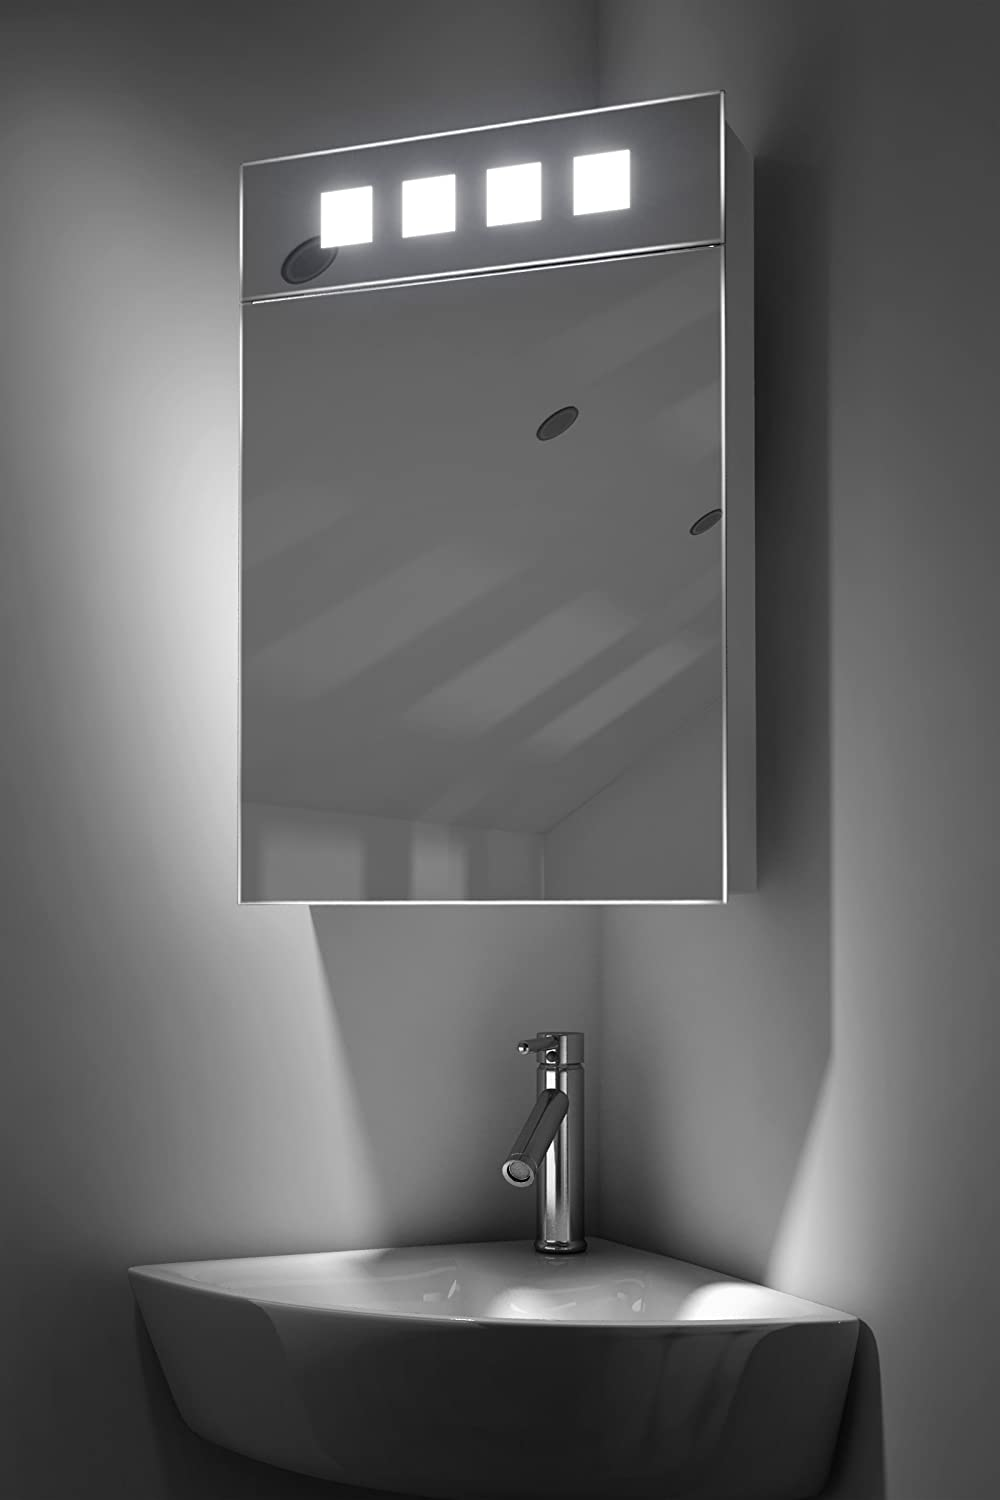 Diamond X Collection Alita Corner Cabinet Mirror With Shaver Socket And Sensor k145 Amazon.co.uk Kitchen u0026 Home & Diamond X Collection Alita Corner Cabinet Mirror With Shaver Socket ...